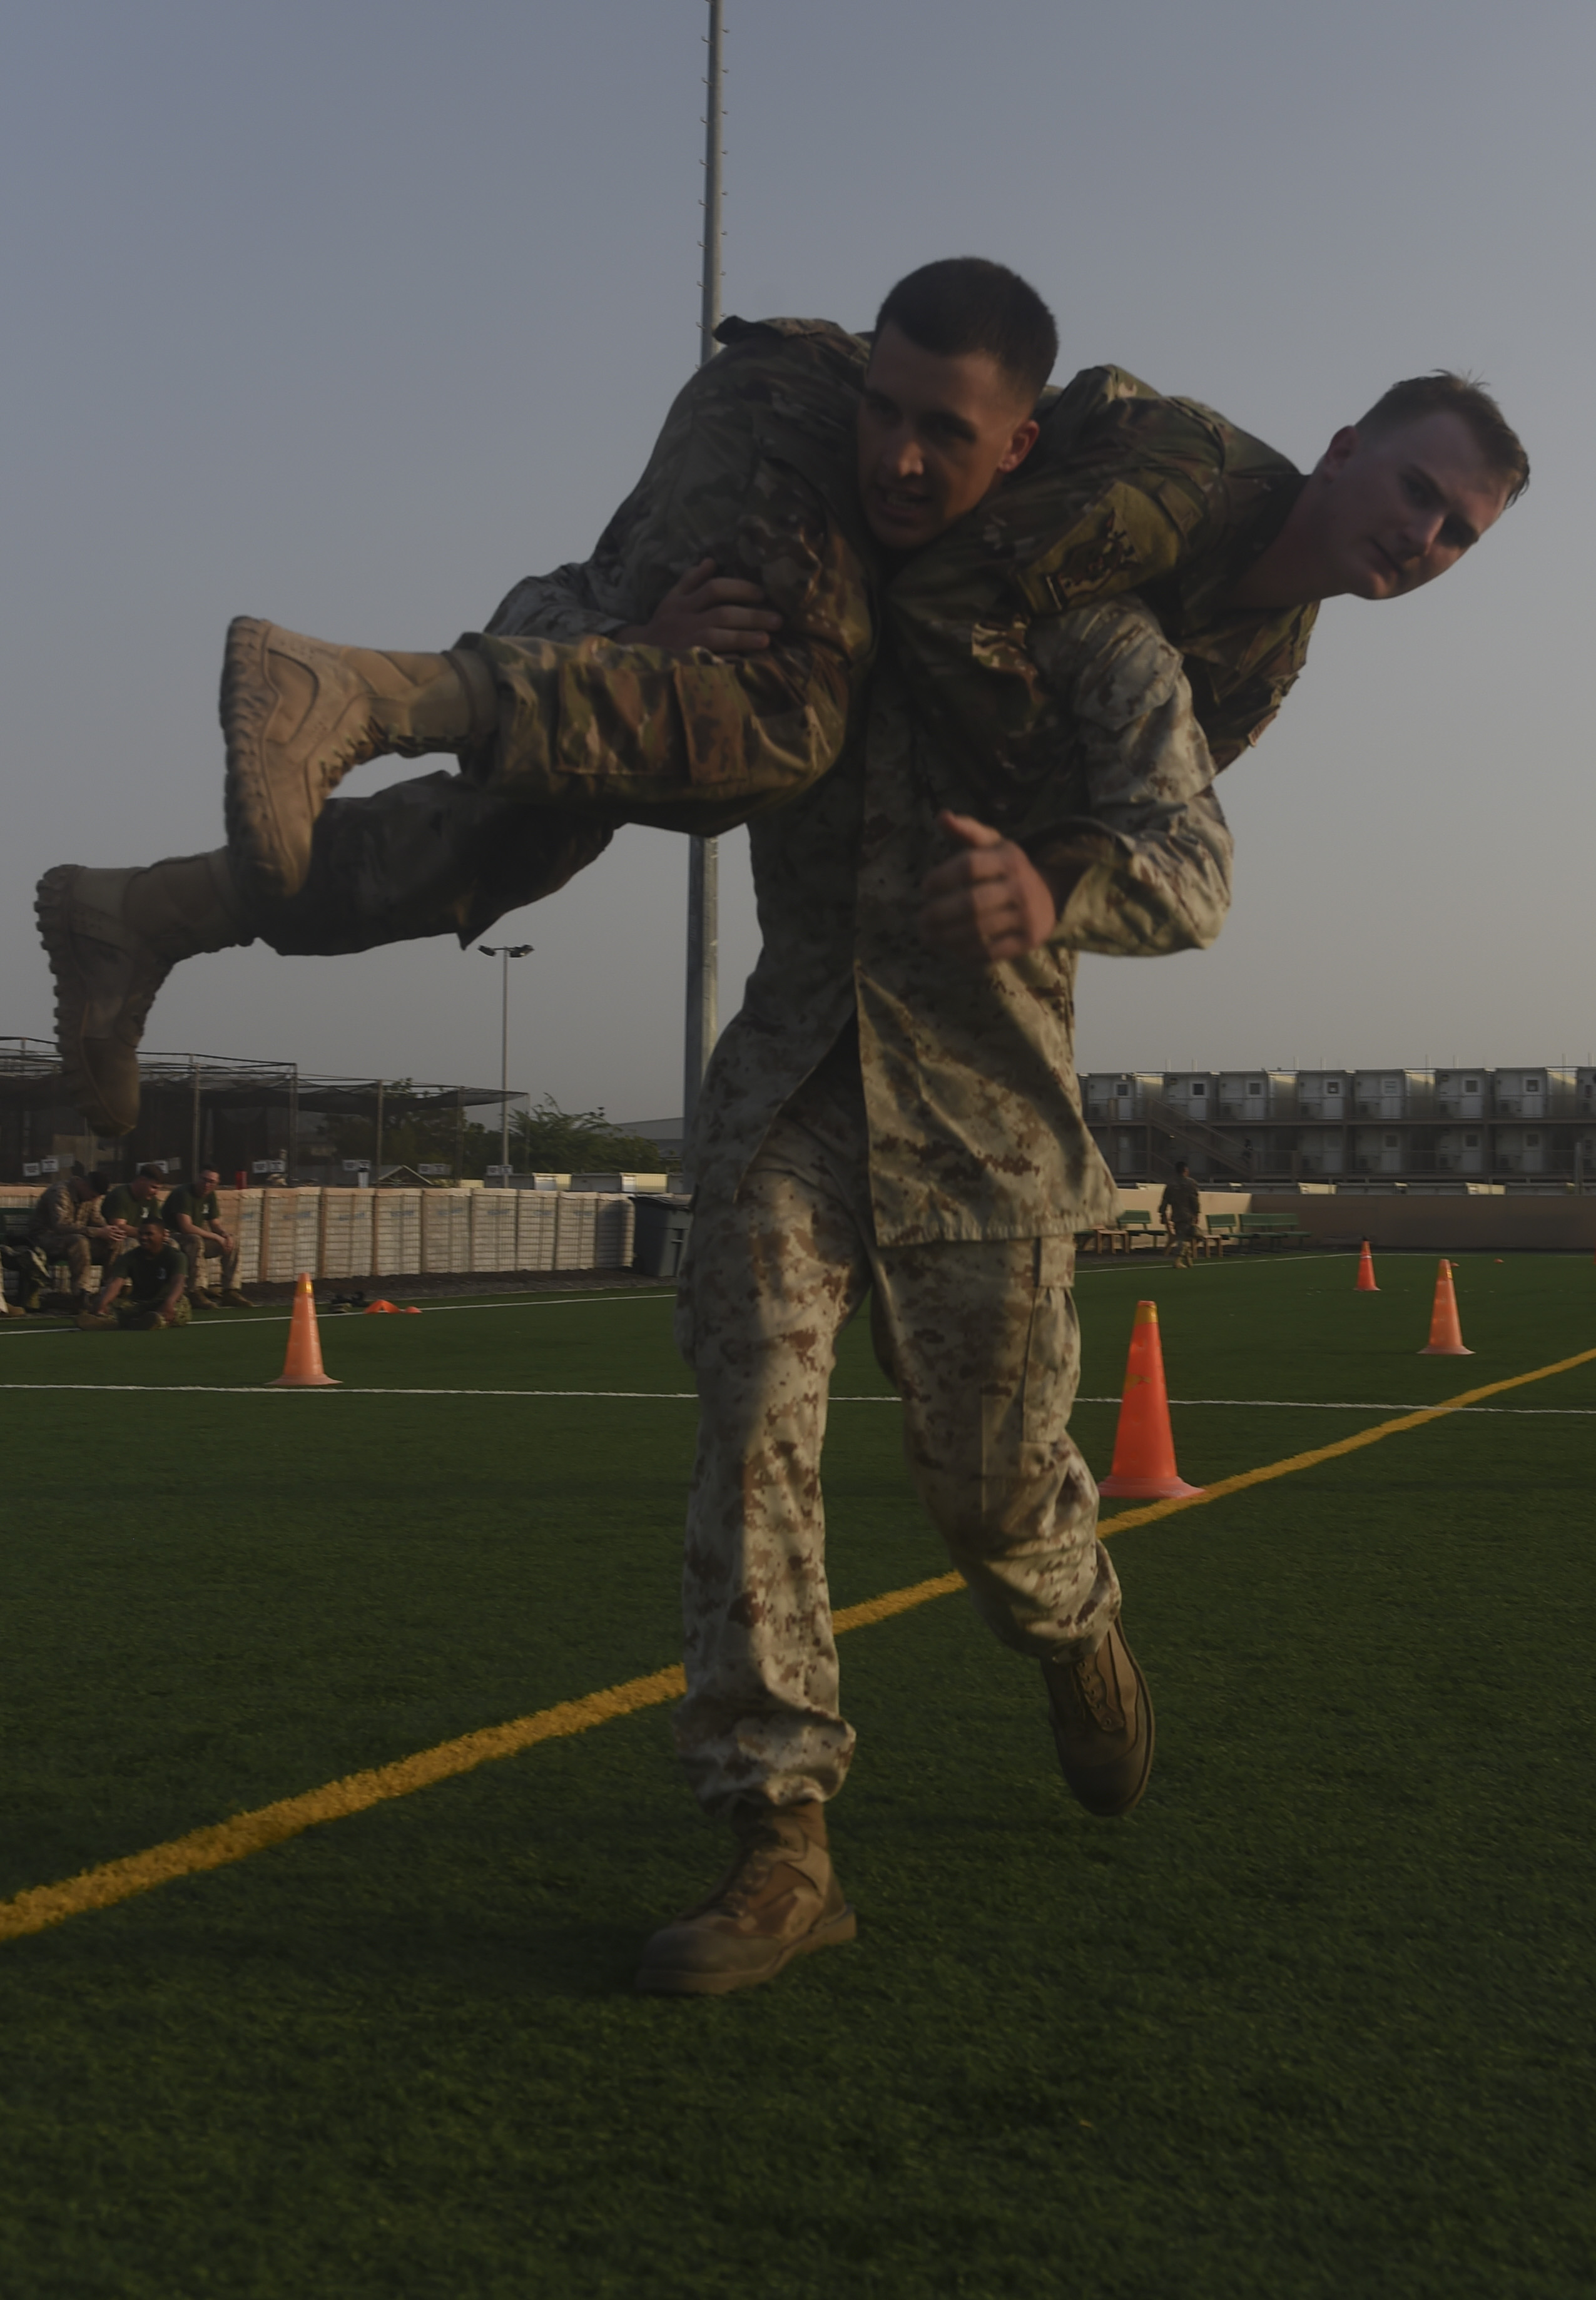 U.S. Marine Corps Cpl. Isaiah Caplan, carries U.S. Air Force Senior Airman Christian Davis, both assigned to Combined Joint Task Force-Horn of Africa, while completing a combat fitness test during the Corporal's Course at Camp Lemonnier, Djibouti, May 31, 2017. A partnered effort between the Marine Corps Element and CJTF-HOA, the Corporals' Leadership Development Course is a professional military education program traditionally for Marine Corps Corporals that places emphasis on basic leadership skills. (U.S. Air Force photo by Staff Sgt. Eboni Prince)